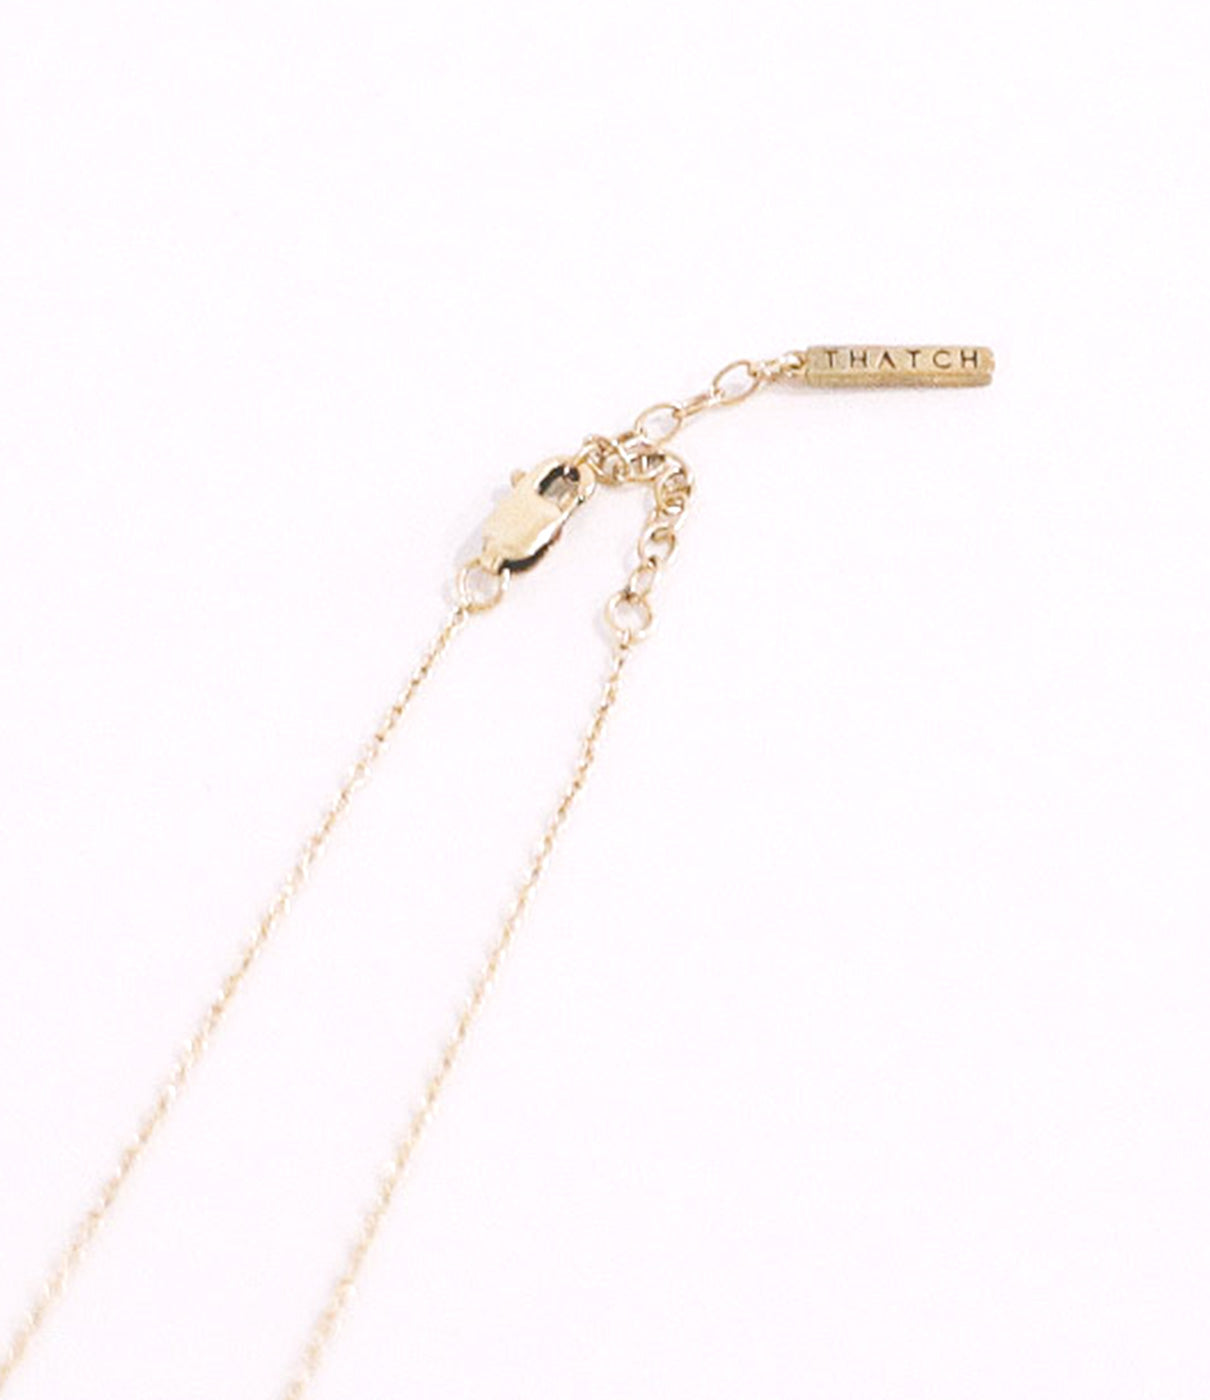 "In the DetailsNecklace features a 1"" extender so necklace can get a little longer if desired."